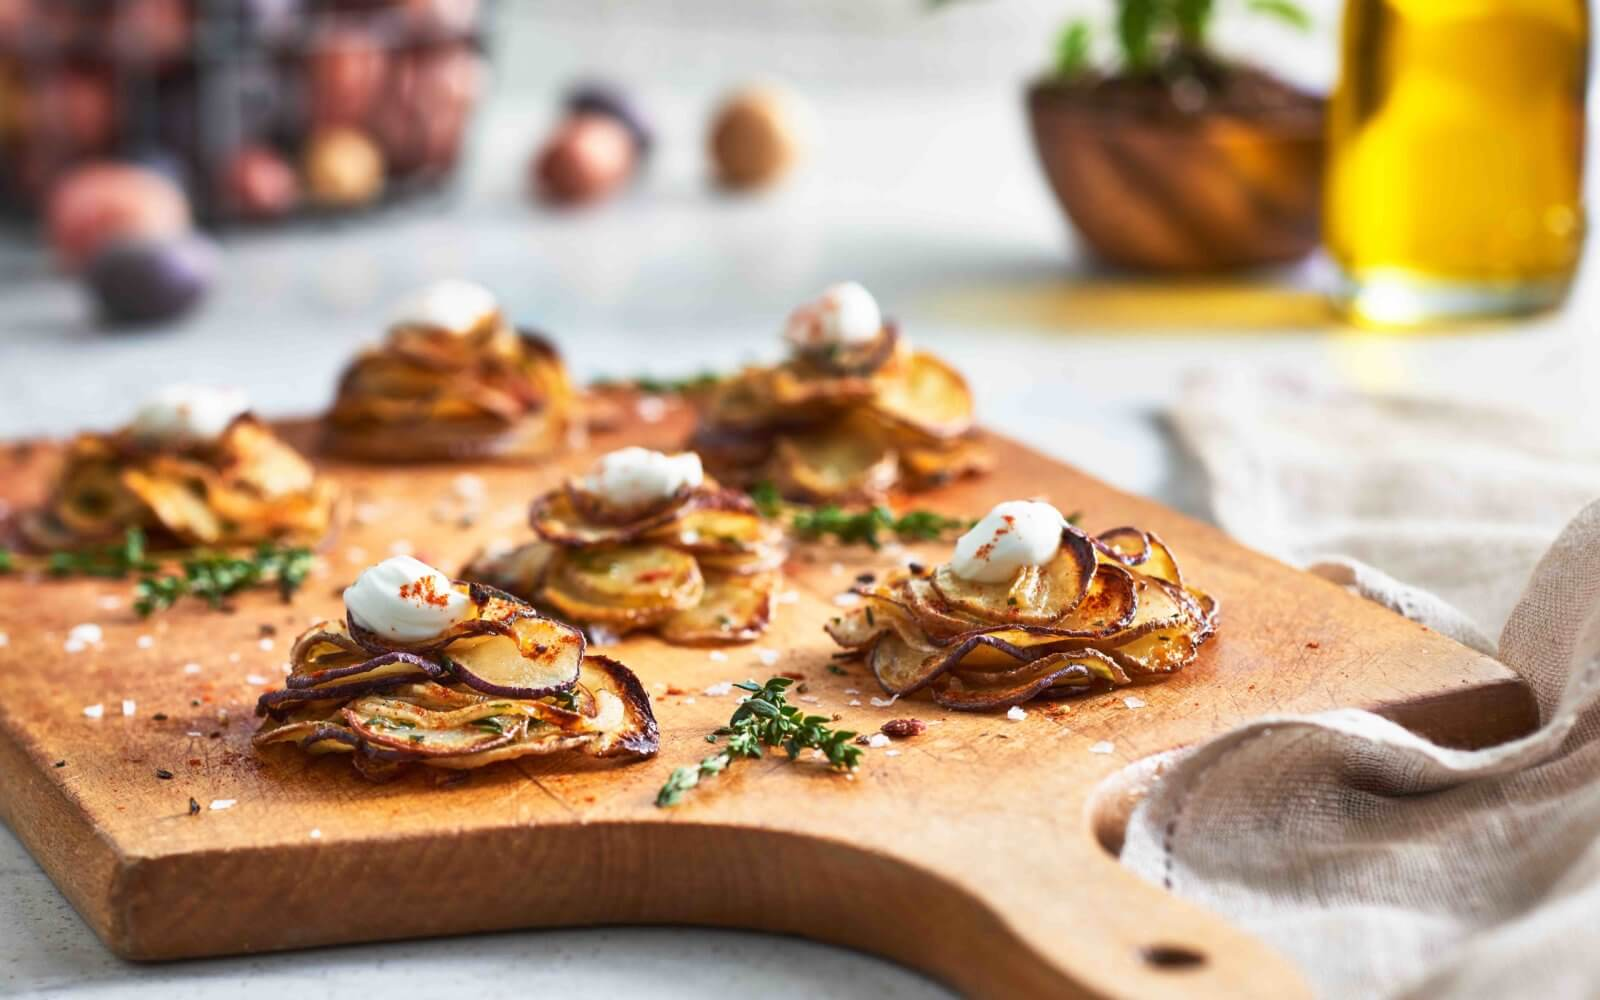 Michael's Little Crispy Potato Stacks